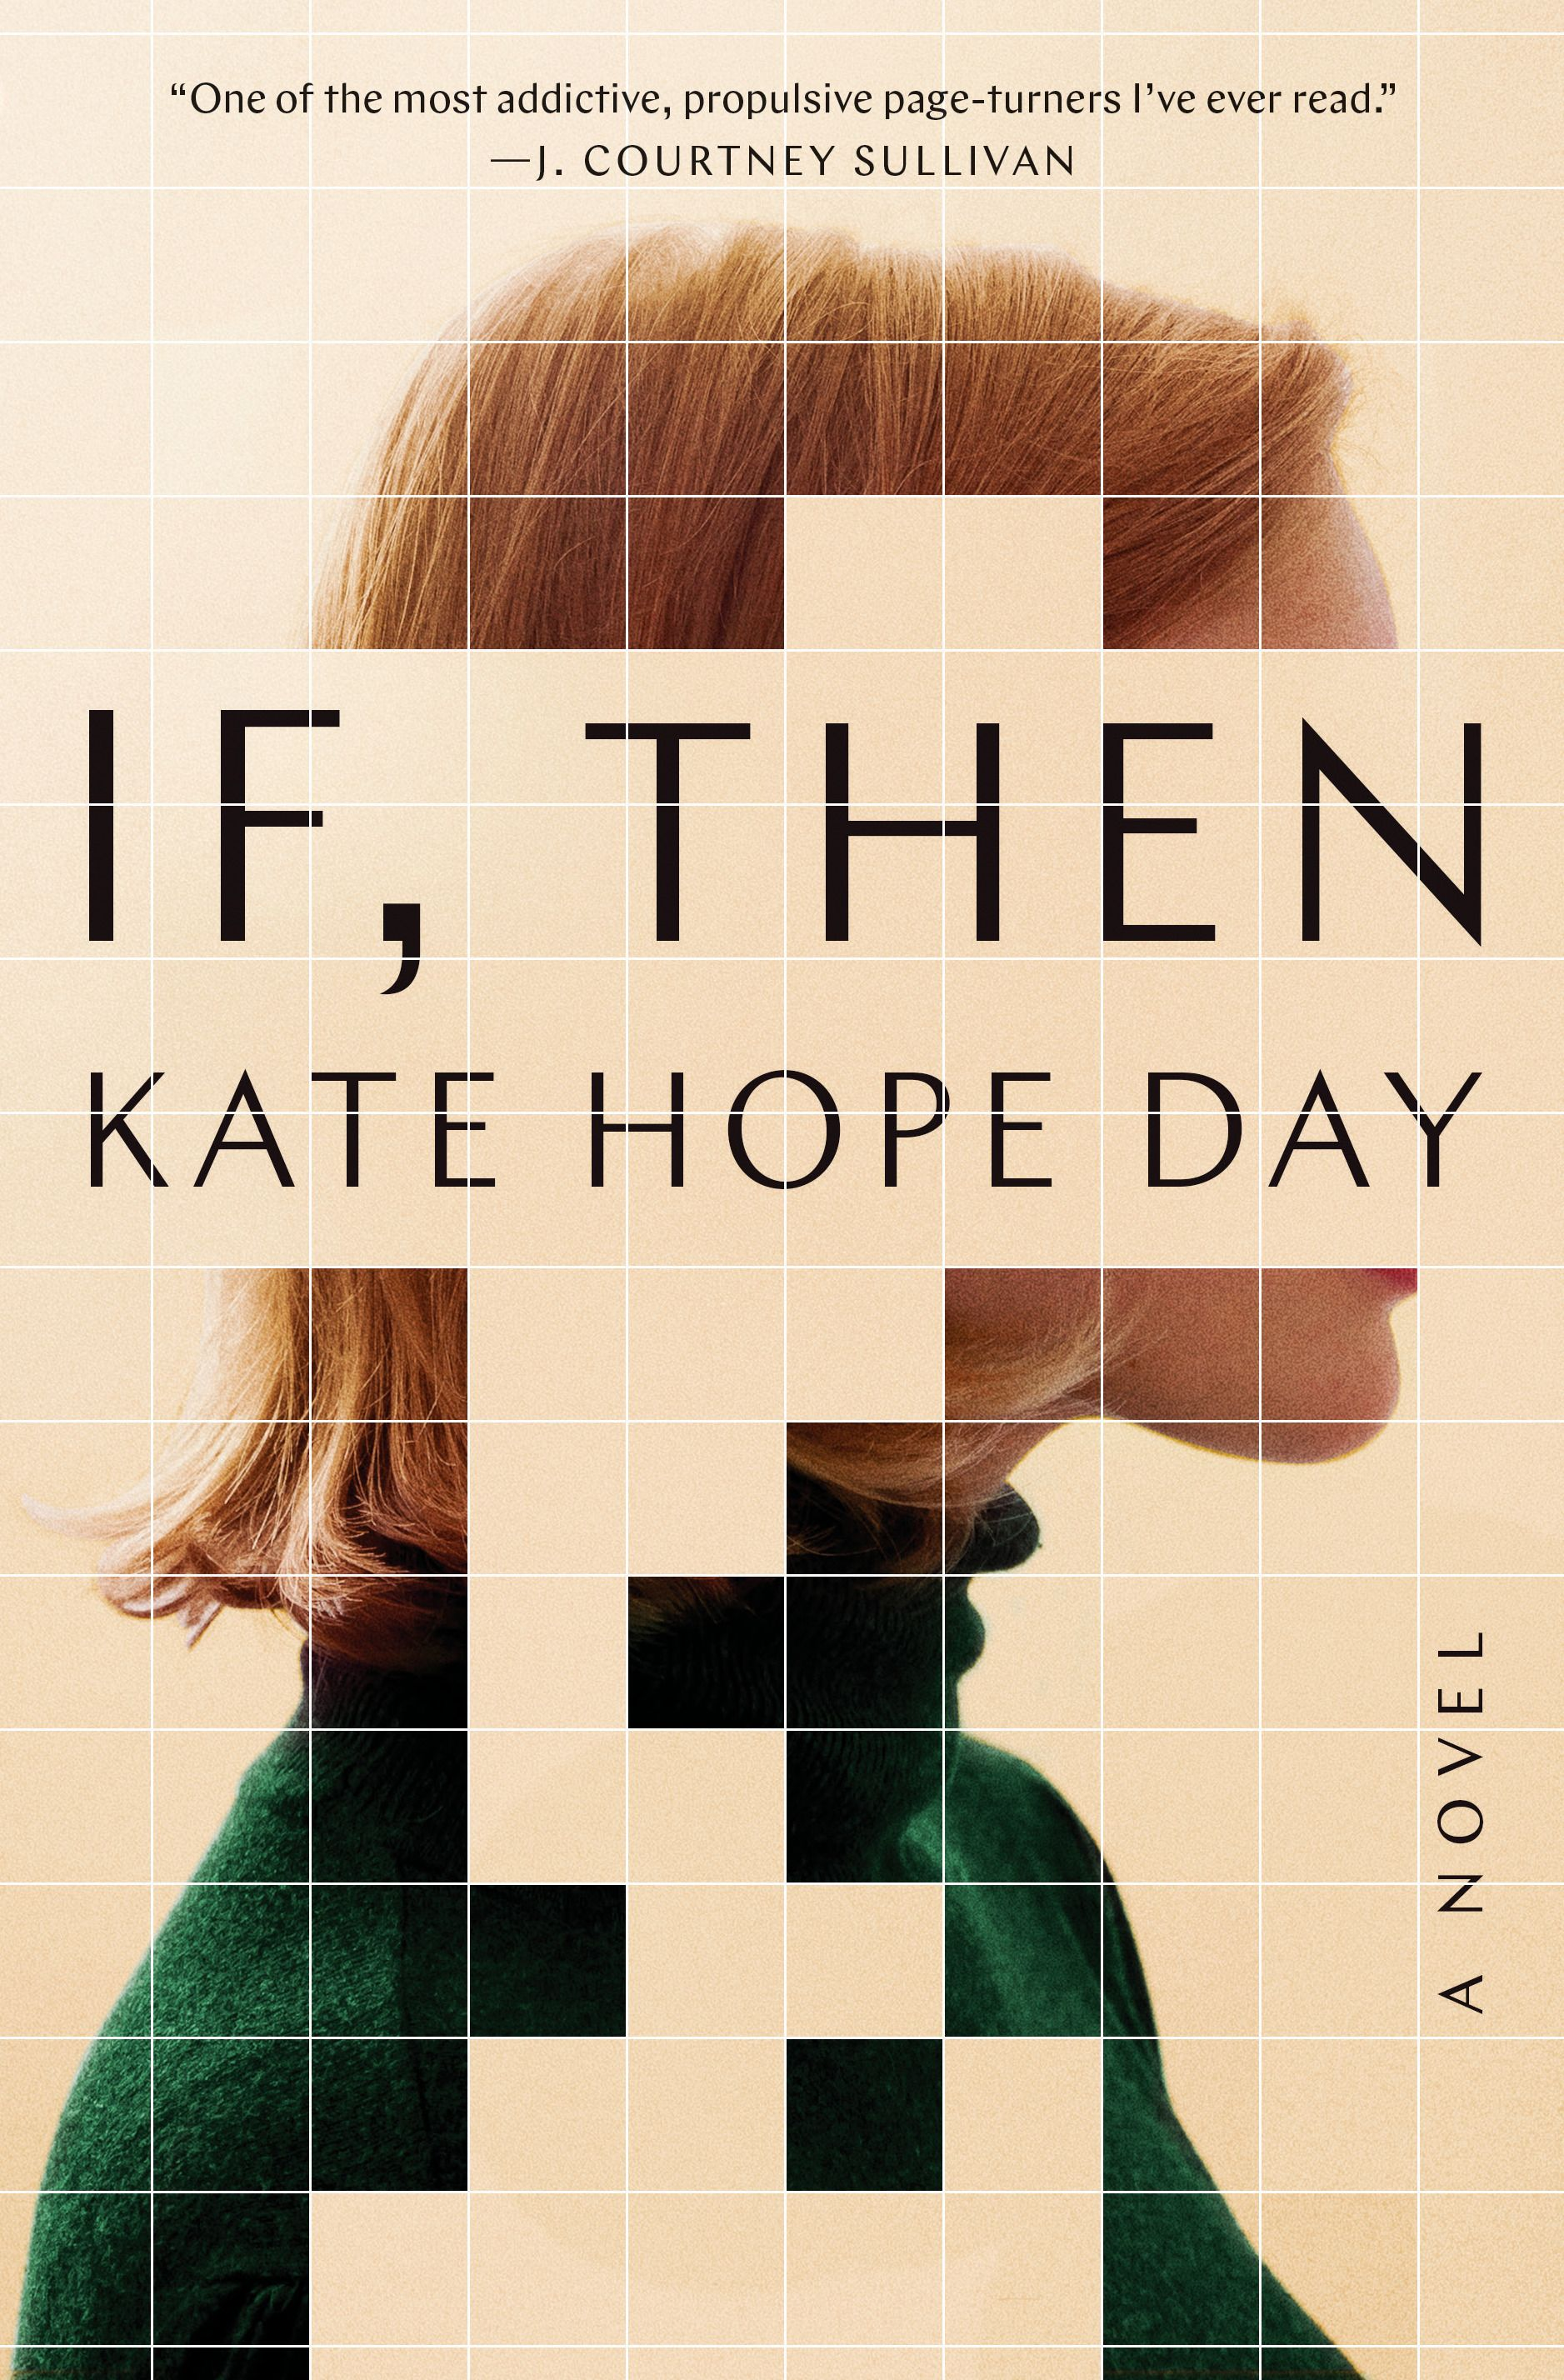 If, Then by Kate Hope Day - The residents of a sleepy mountain town are rocked by troubling visions of an alternate reality in this dazzling debut that combines the family-driven suspense of Celeste Ng's Little Fires Everywhere with the inventive storytelling of The Immortalists.In the quiet haven of Clearing, Oregon, four neighbors find their lives upended when they begin to see themselves in parallel realities. Ginny, a devoted surgeon whose work often takes precedence over her family, has a baffling vision of a beautiful co-worker in Ginny's own bed and begins to doubt the solidity of her marriage. Ginny's husband, Mark, a wildlife scientist, sees a vision that suggests impending devastation and grows increasingly paranoid, threatening the safety of his wife and son. Samara, a young woman desperately mourning the recent death of her mother and questioning why her father seems to be coping with such ease, witnesses an apparition of her mother healthy and vibrant and wonders about the secrets her parents may have kept from her. Cass, a brilliant scholar struggling with the demands of new motherhood, catches a glimpse of herself pregnant again, just as she's on the brink of returning to the project that could define her career.At first the visions are relatively benign, but they grow increasingly disturbing—and, in some cases, frightening. When a natural disaster threatens Clearing, it becomes obvious that the visions were not what they first seemed and that the town will never be the same.